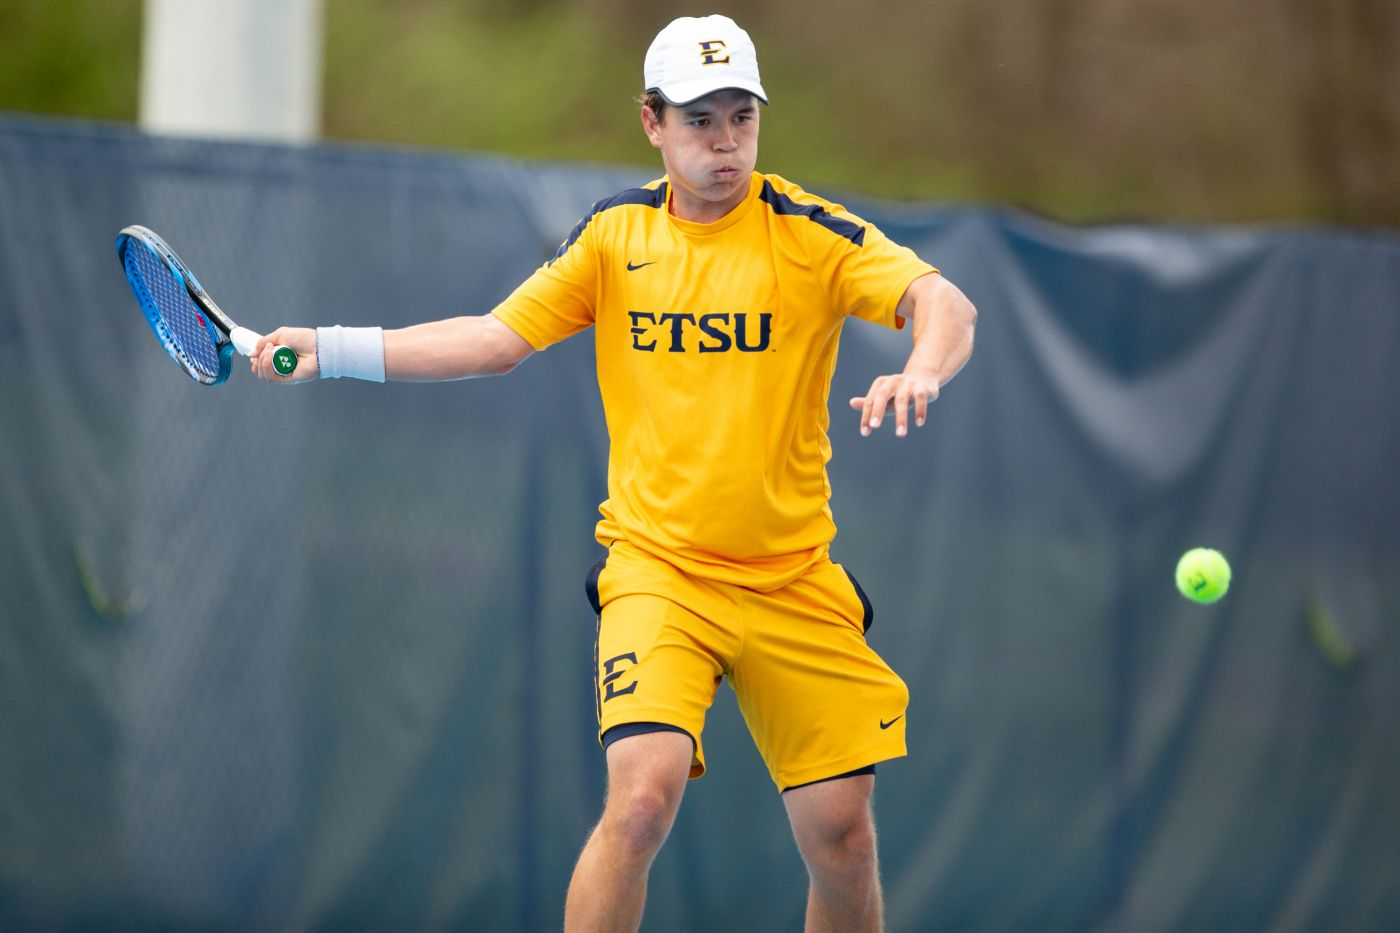 Singles Wins Propels ETSU to Victory